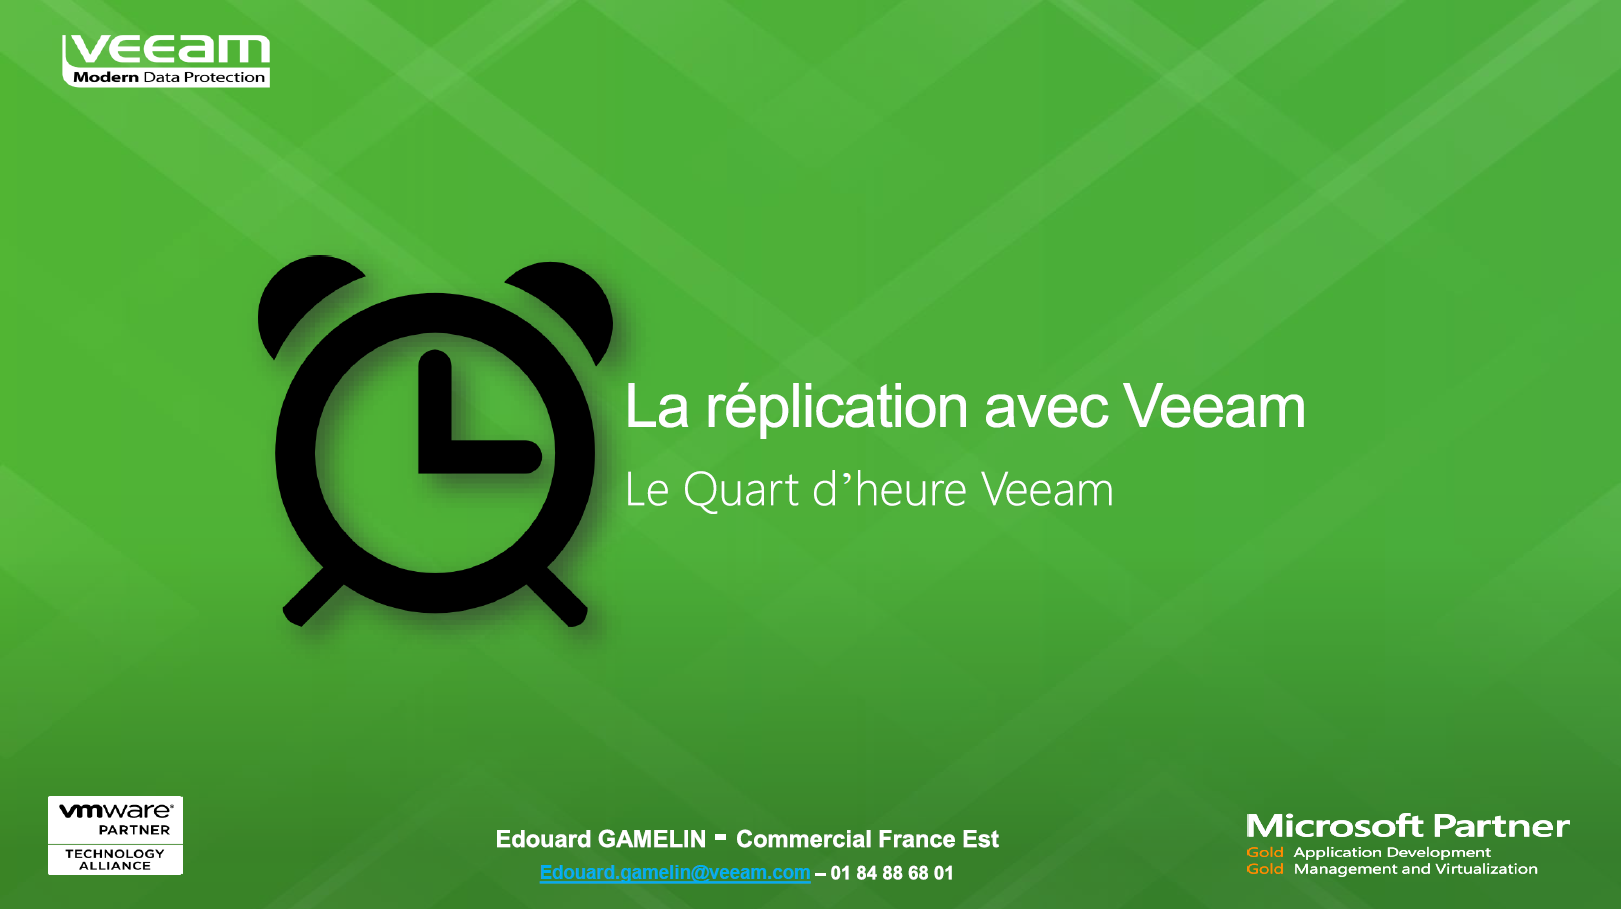 Le Quart d'Heure Veeam: La réplication avec Veeam Backup & Replication